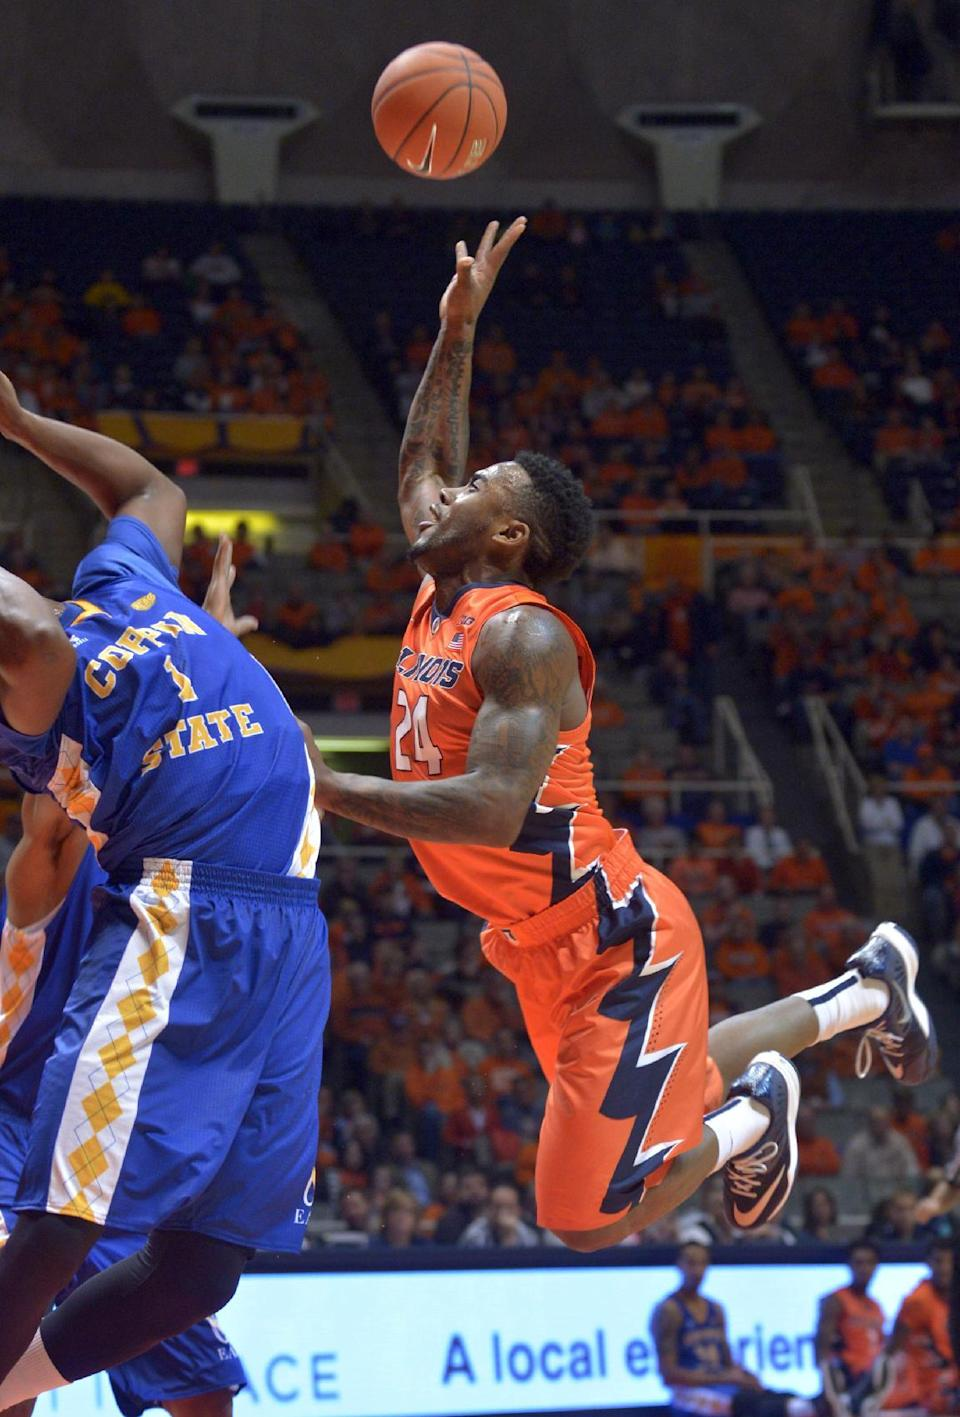 Illinois' guard Rayvonte Rice (24) goes up for a shot in front of Coppin State's forward Dallas Gary (1) during an NCAA college basketball game in Champaign, Ill., on Sunday, Nov. 16, 2014. (AP Photo/Robin Scholz)